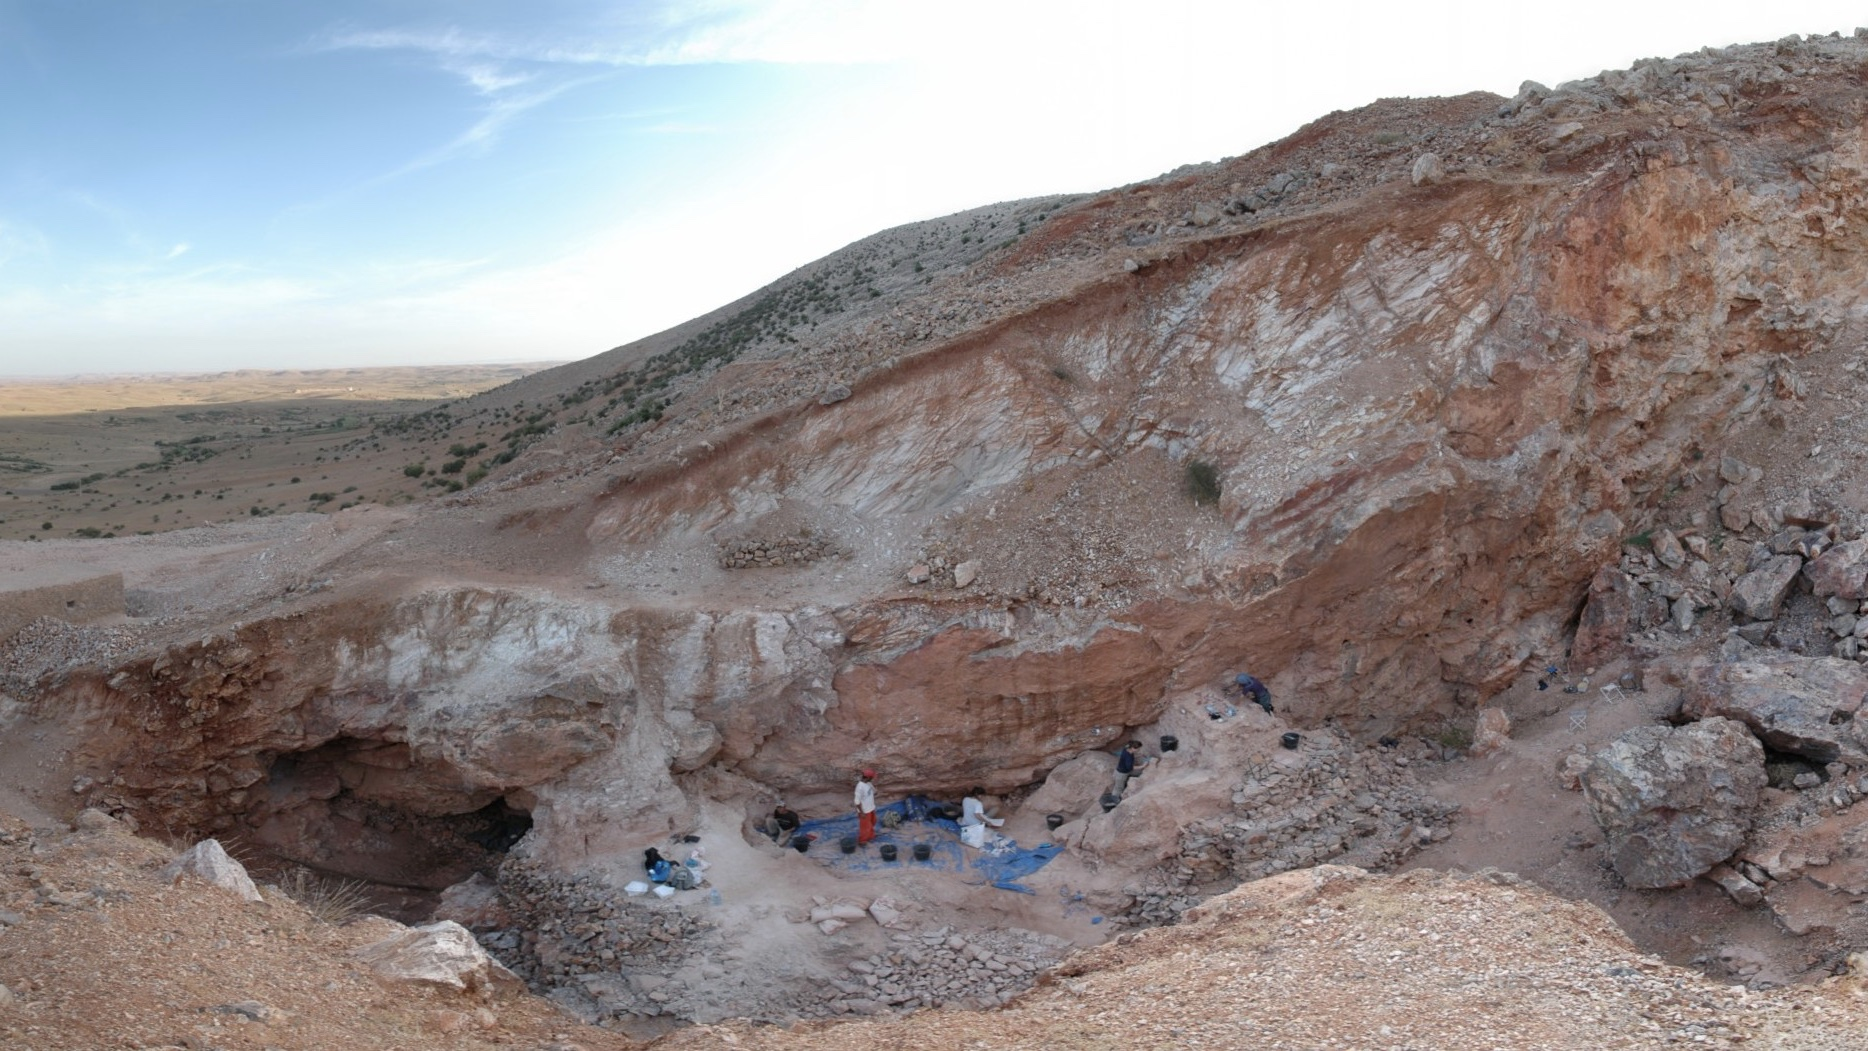 Earliest fossils of our species found in Morocco